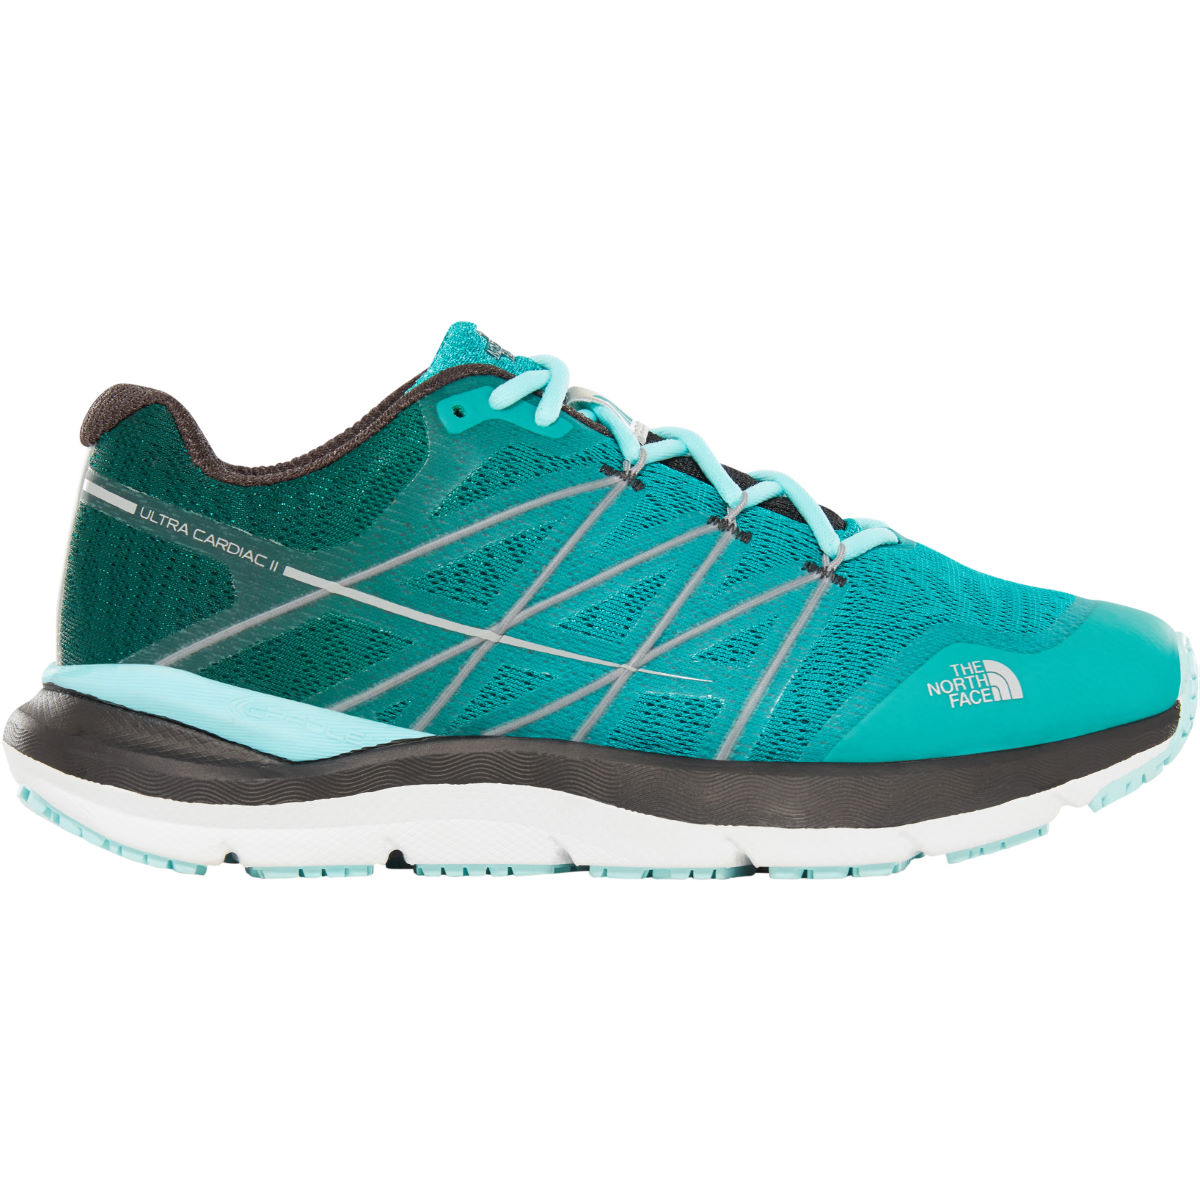 The North Face The North Face Womens Ultra Cardiac II Shoes   Trail Shoes